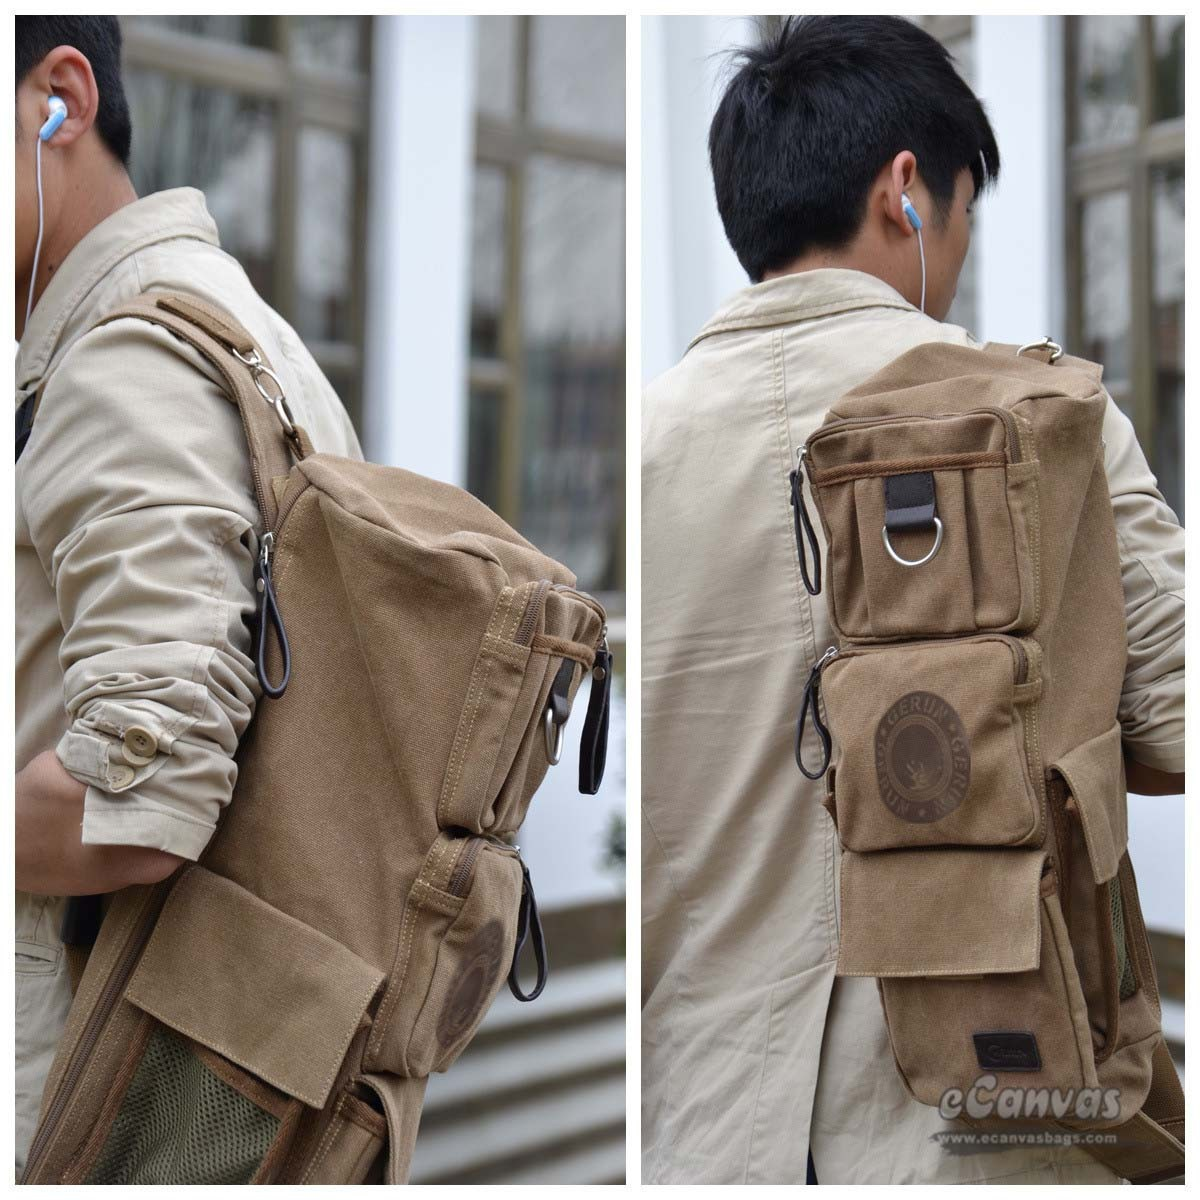 ... canvas one strap backpack coffee for men · mens canvas one strap  backpack coffee · Sling shoulder pack khaki ... eb218fe9e824c